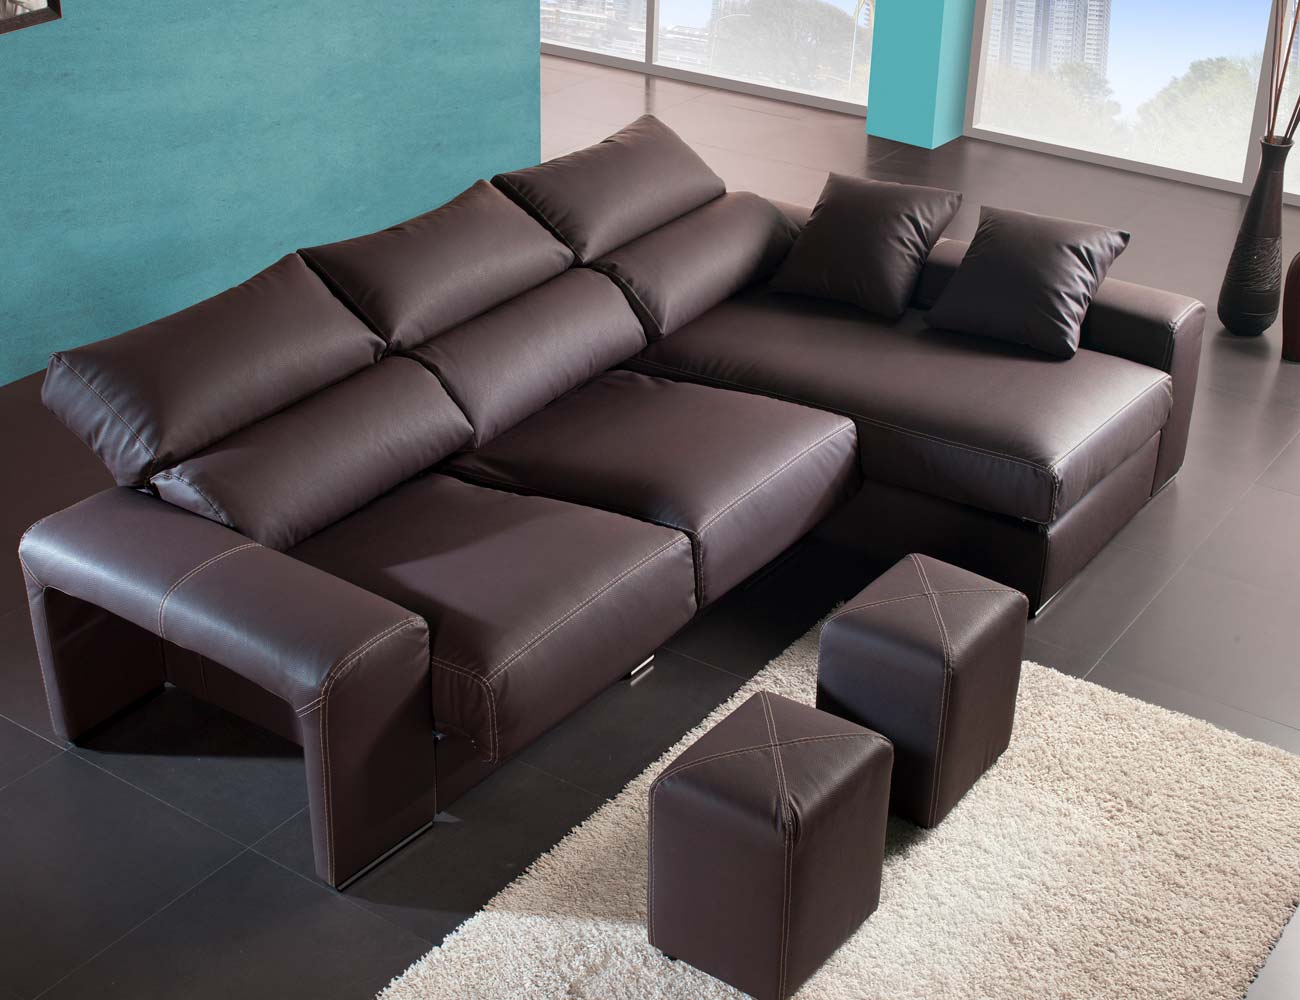 Sofa chaiselongue moderno polipiel chocolate poufs taburetes47